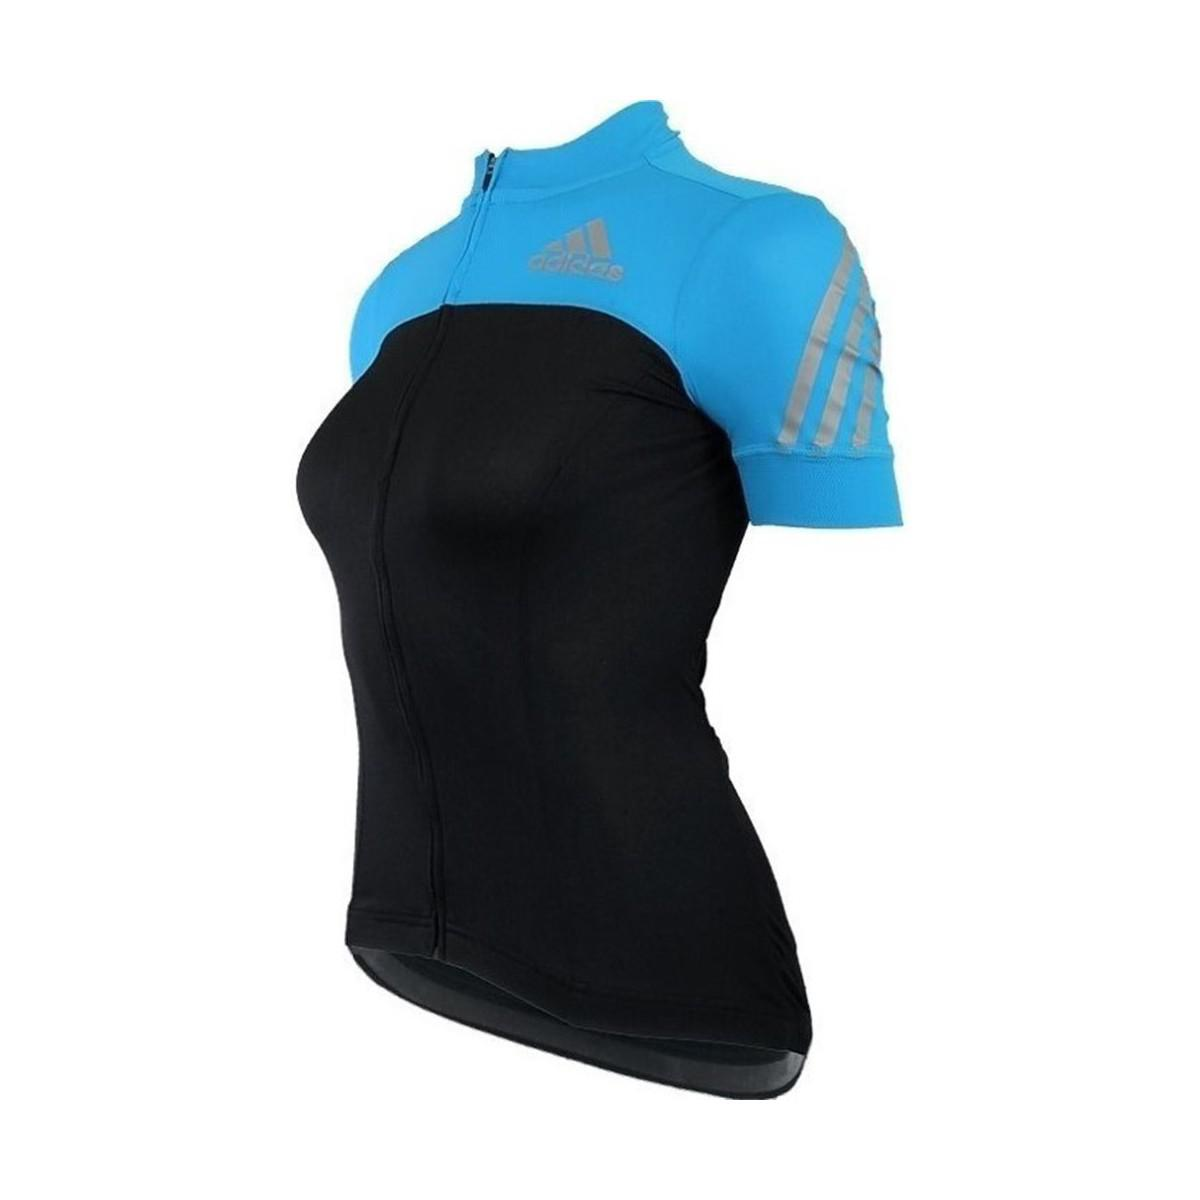 adidas. Supernova Shortsleeve Cycling Jersey W Women s T Shirt In Black fda9bfbcb